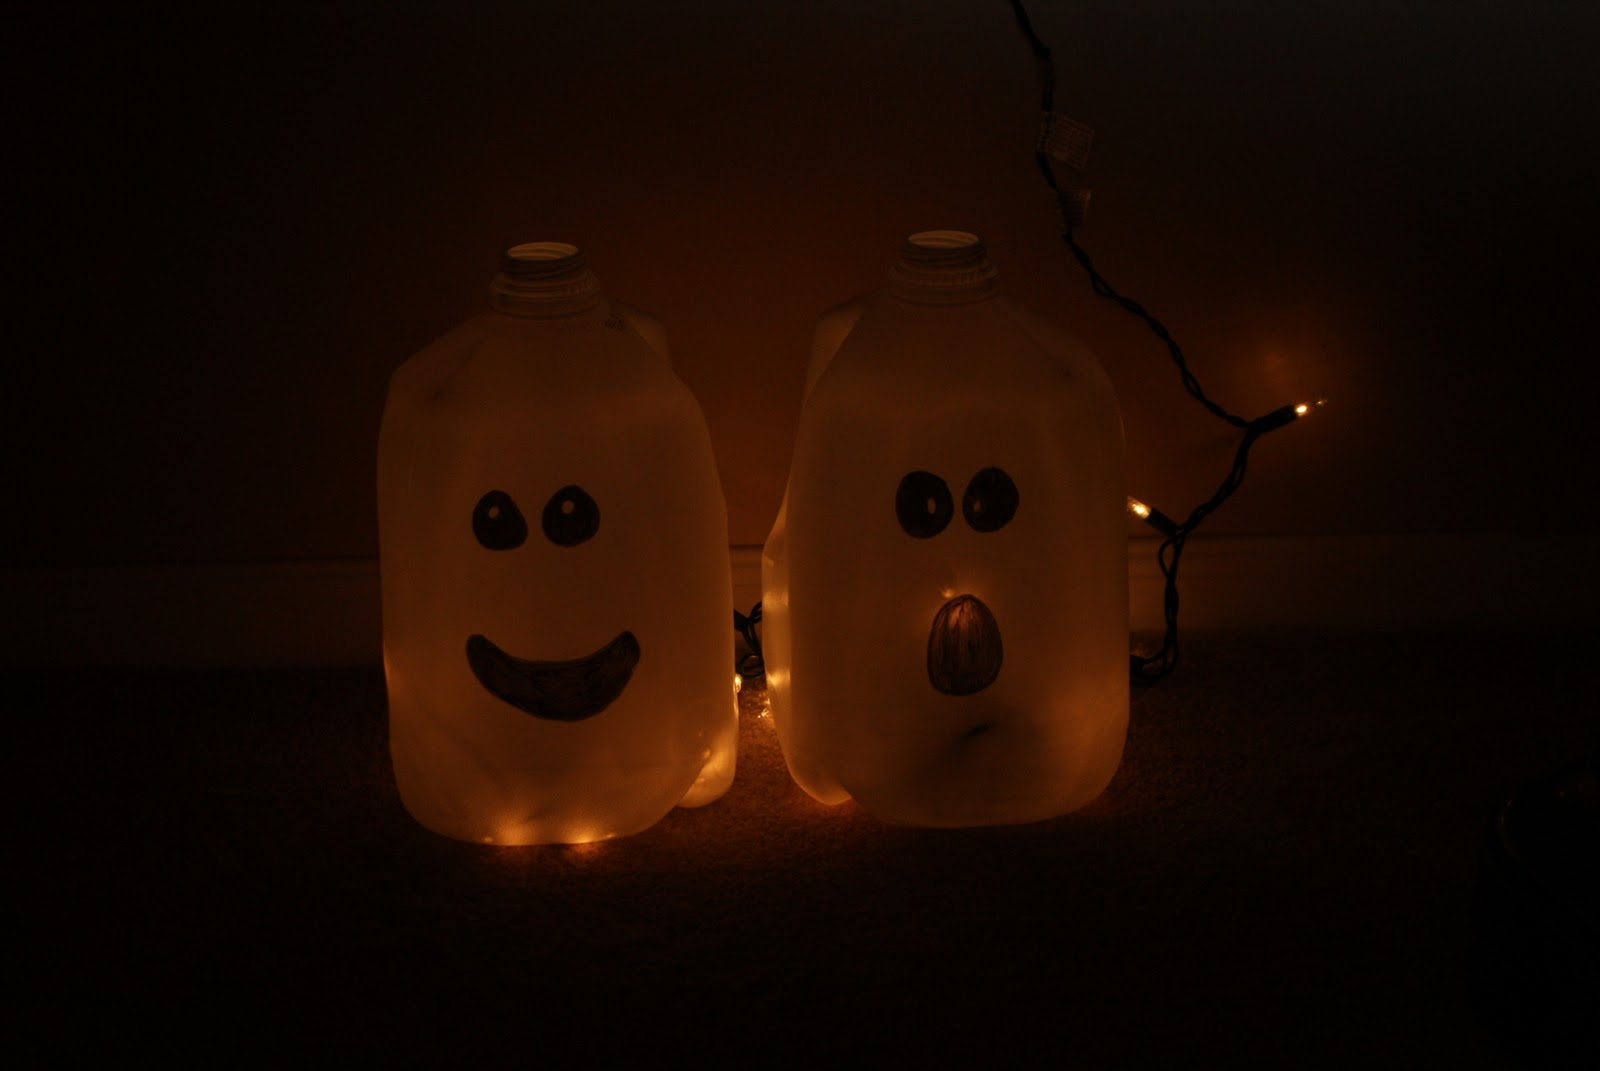 ghostly ghouls milk carton recycling start saving ahead of time and you can even line your walkway with these ghostly additions - Milk Carton Halloween Ghosts